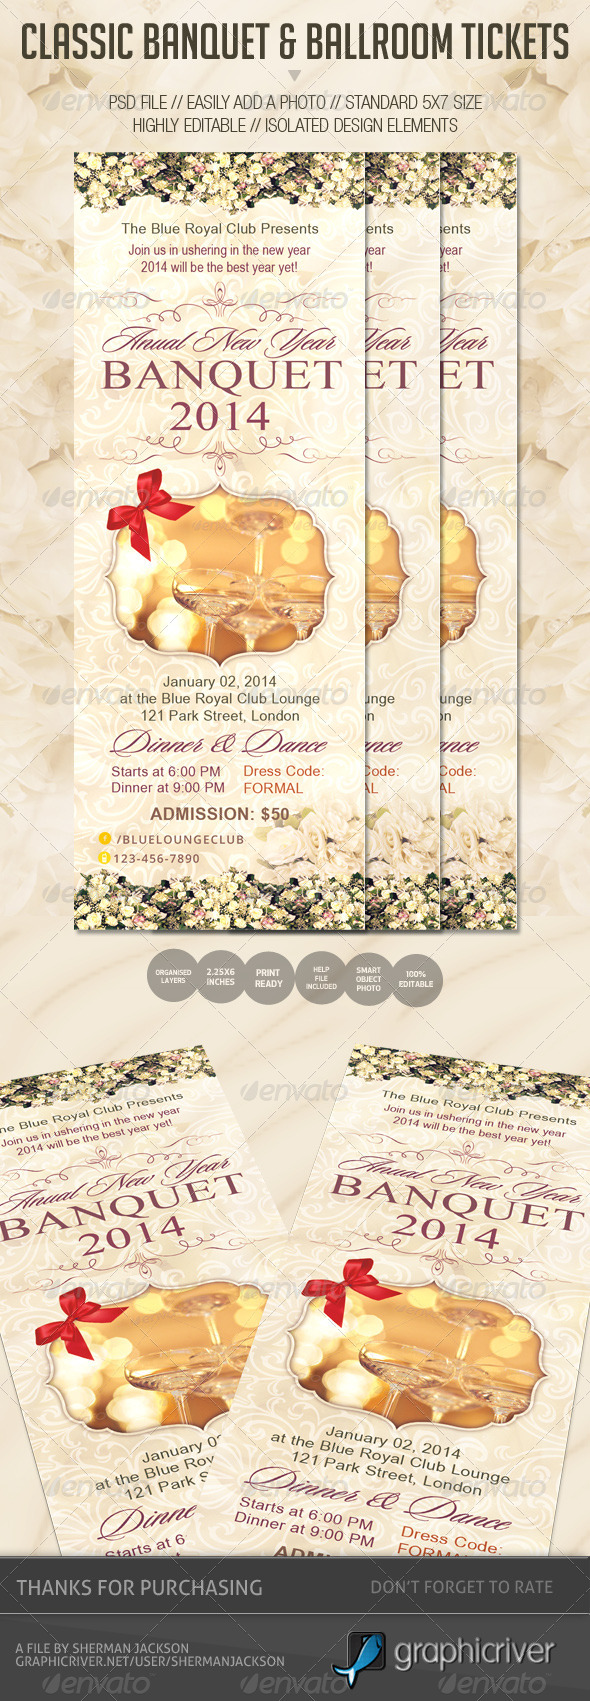 GraphicRiver Classic Banquet & Ballroom Tickets 6400385